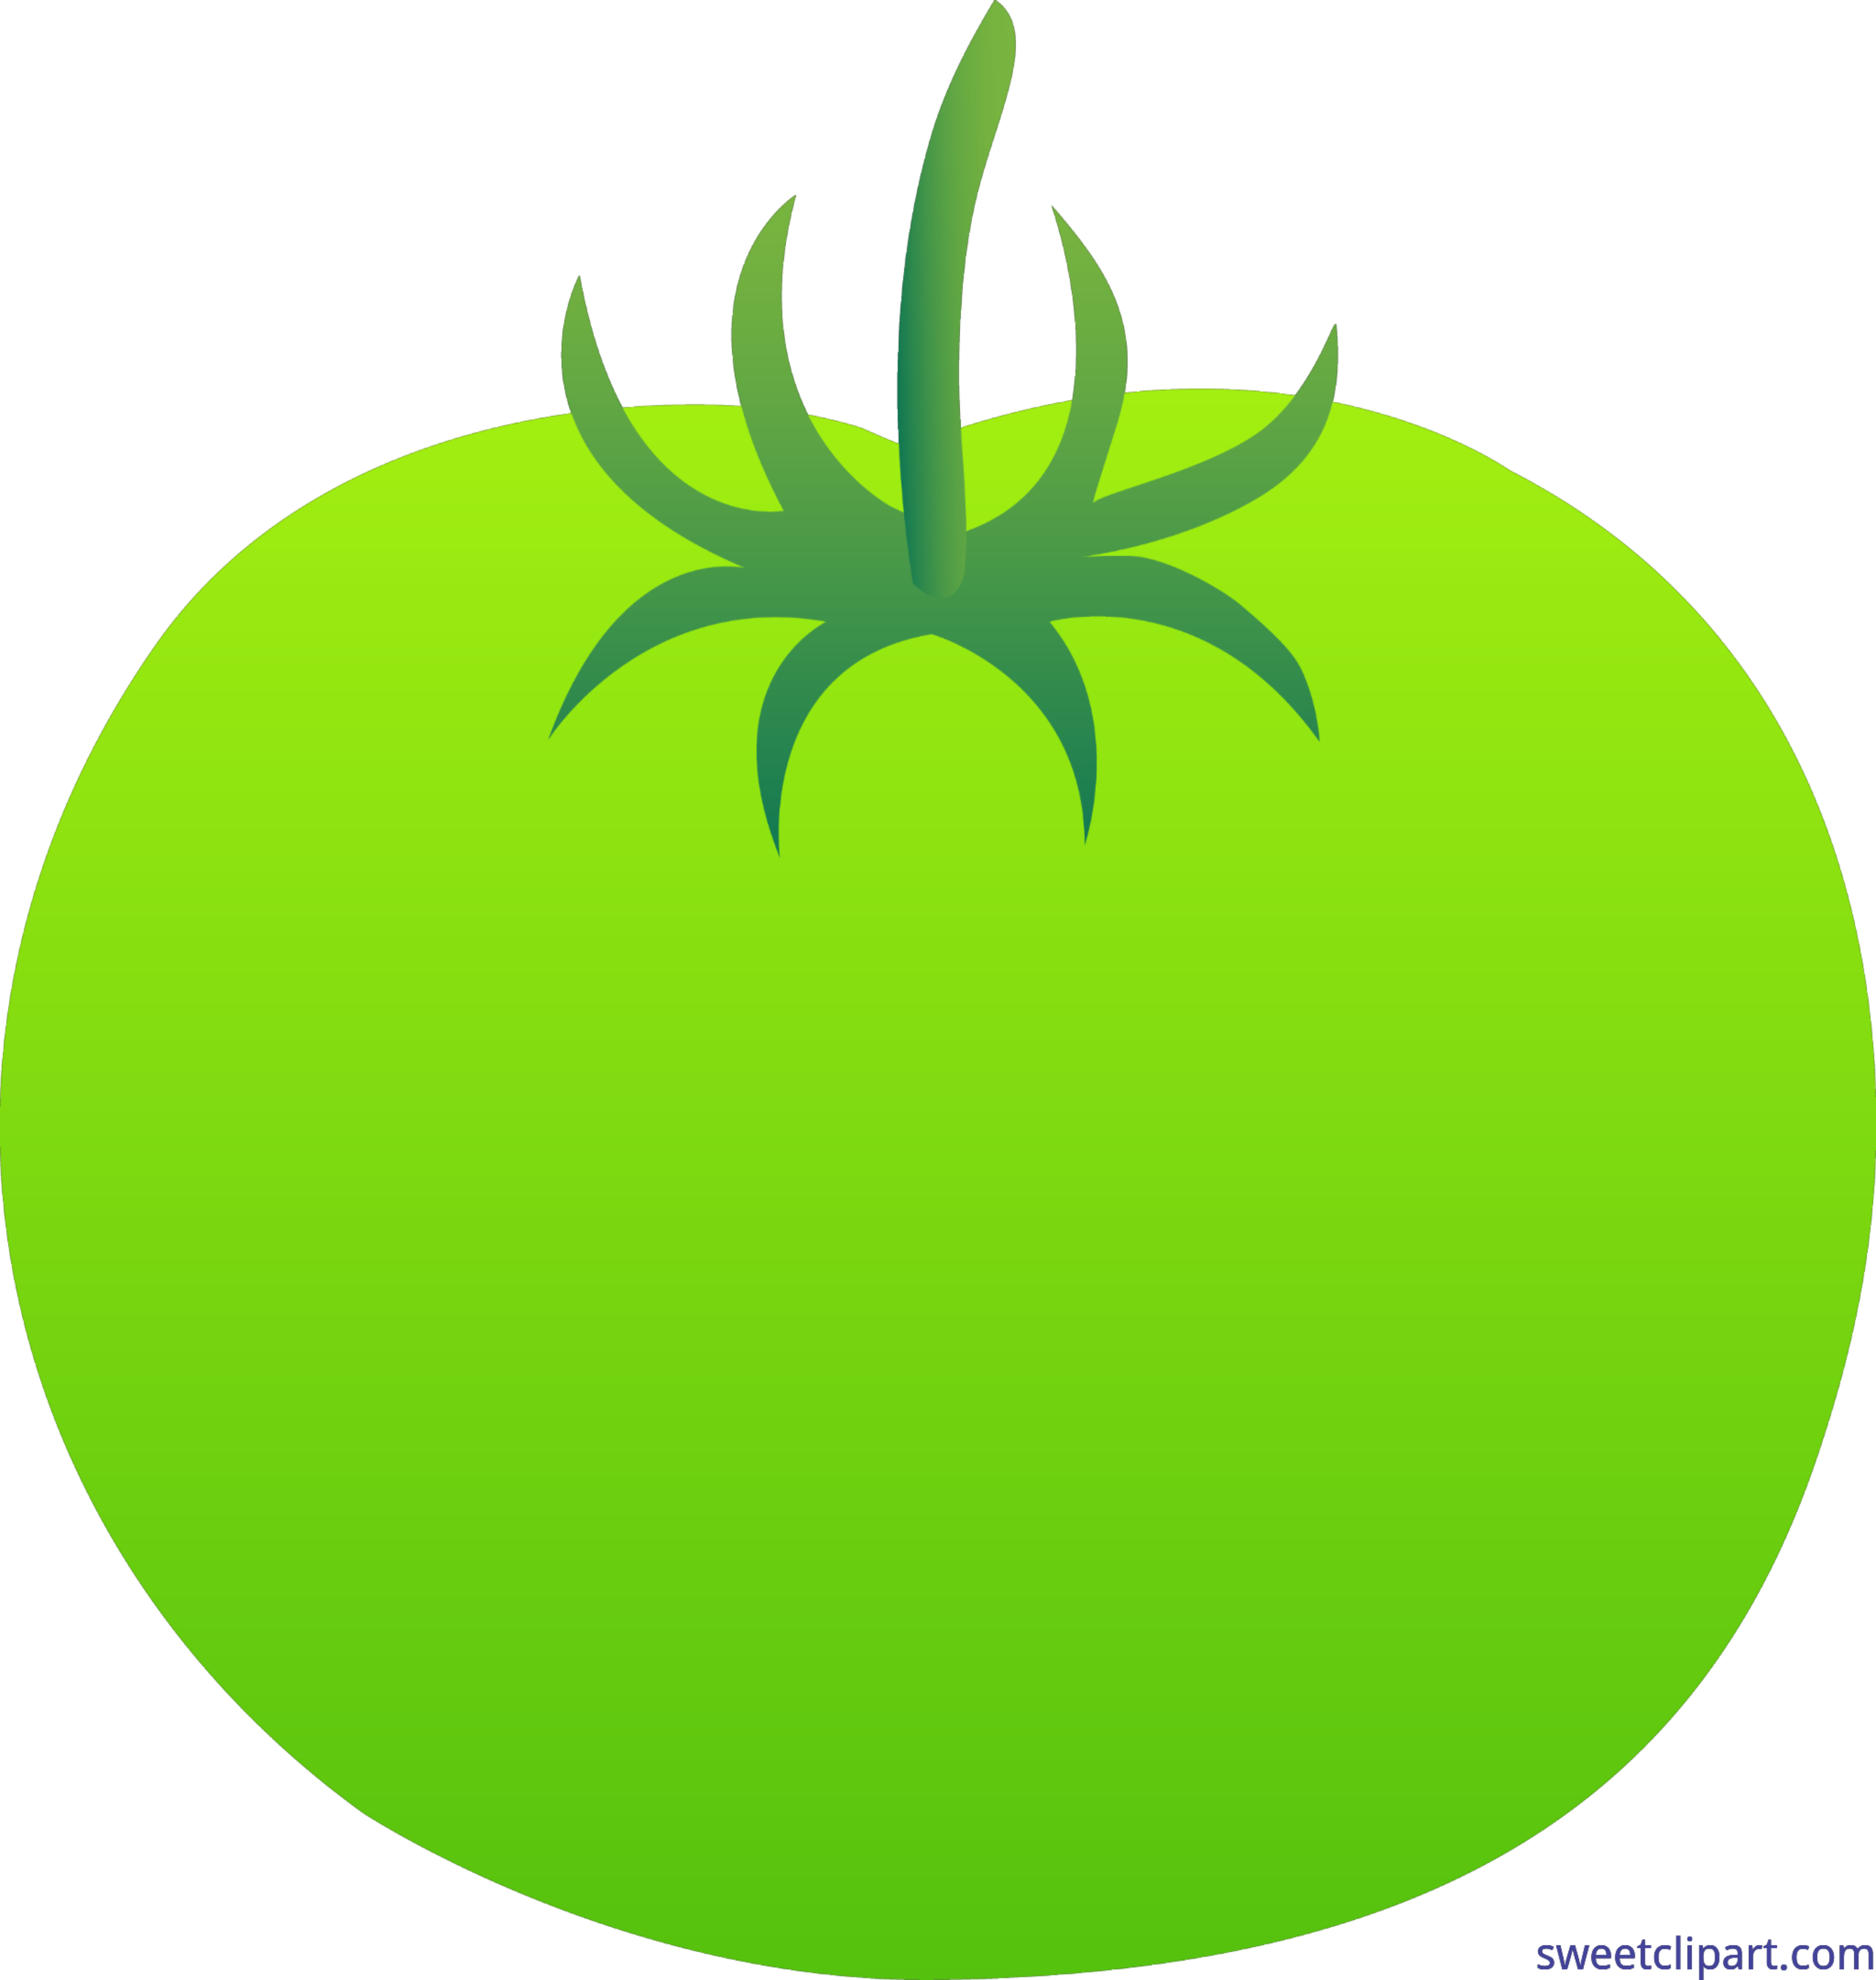 Tomatoes clipart tomato leaf. Green clip art sweet